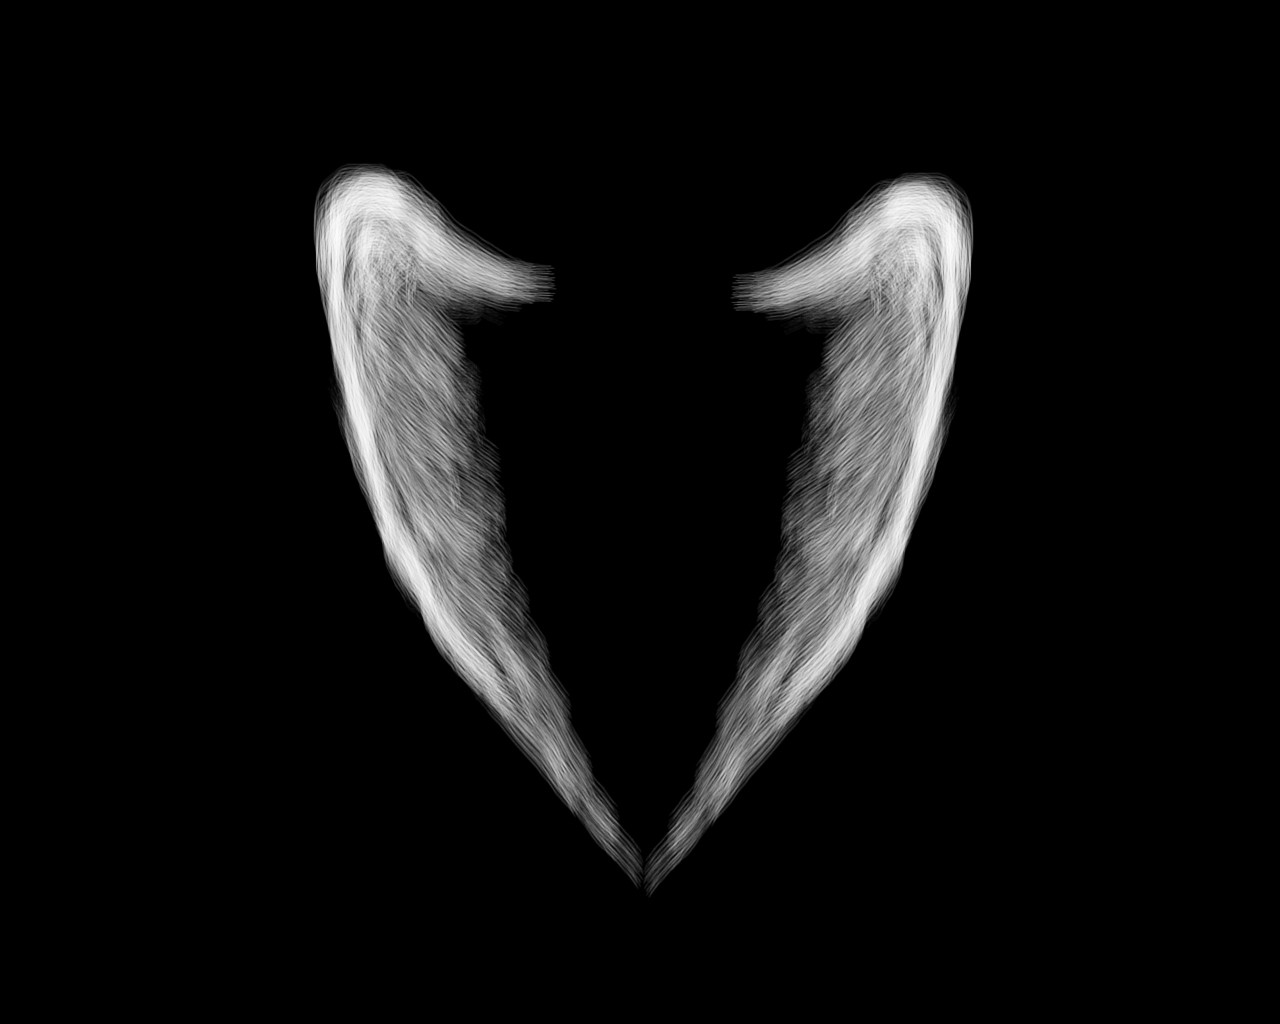 download Angel Wing Wallpaper Top HD Angel Wing Images LE HQ 1280x1024